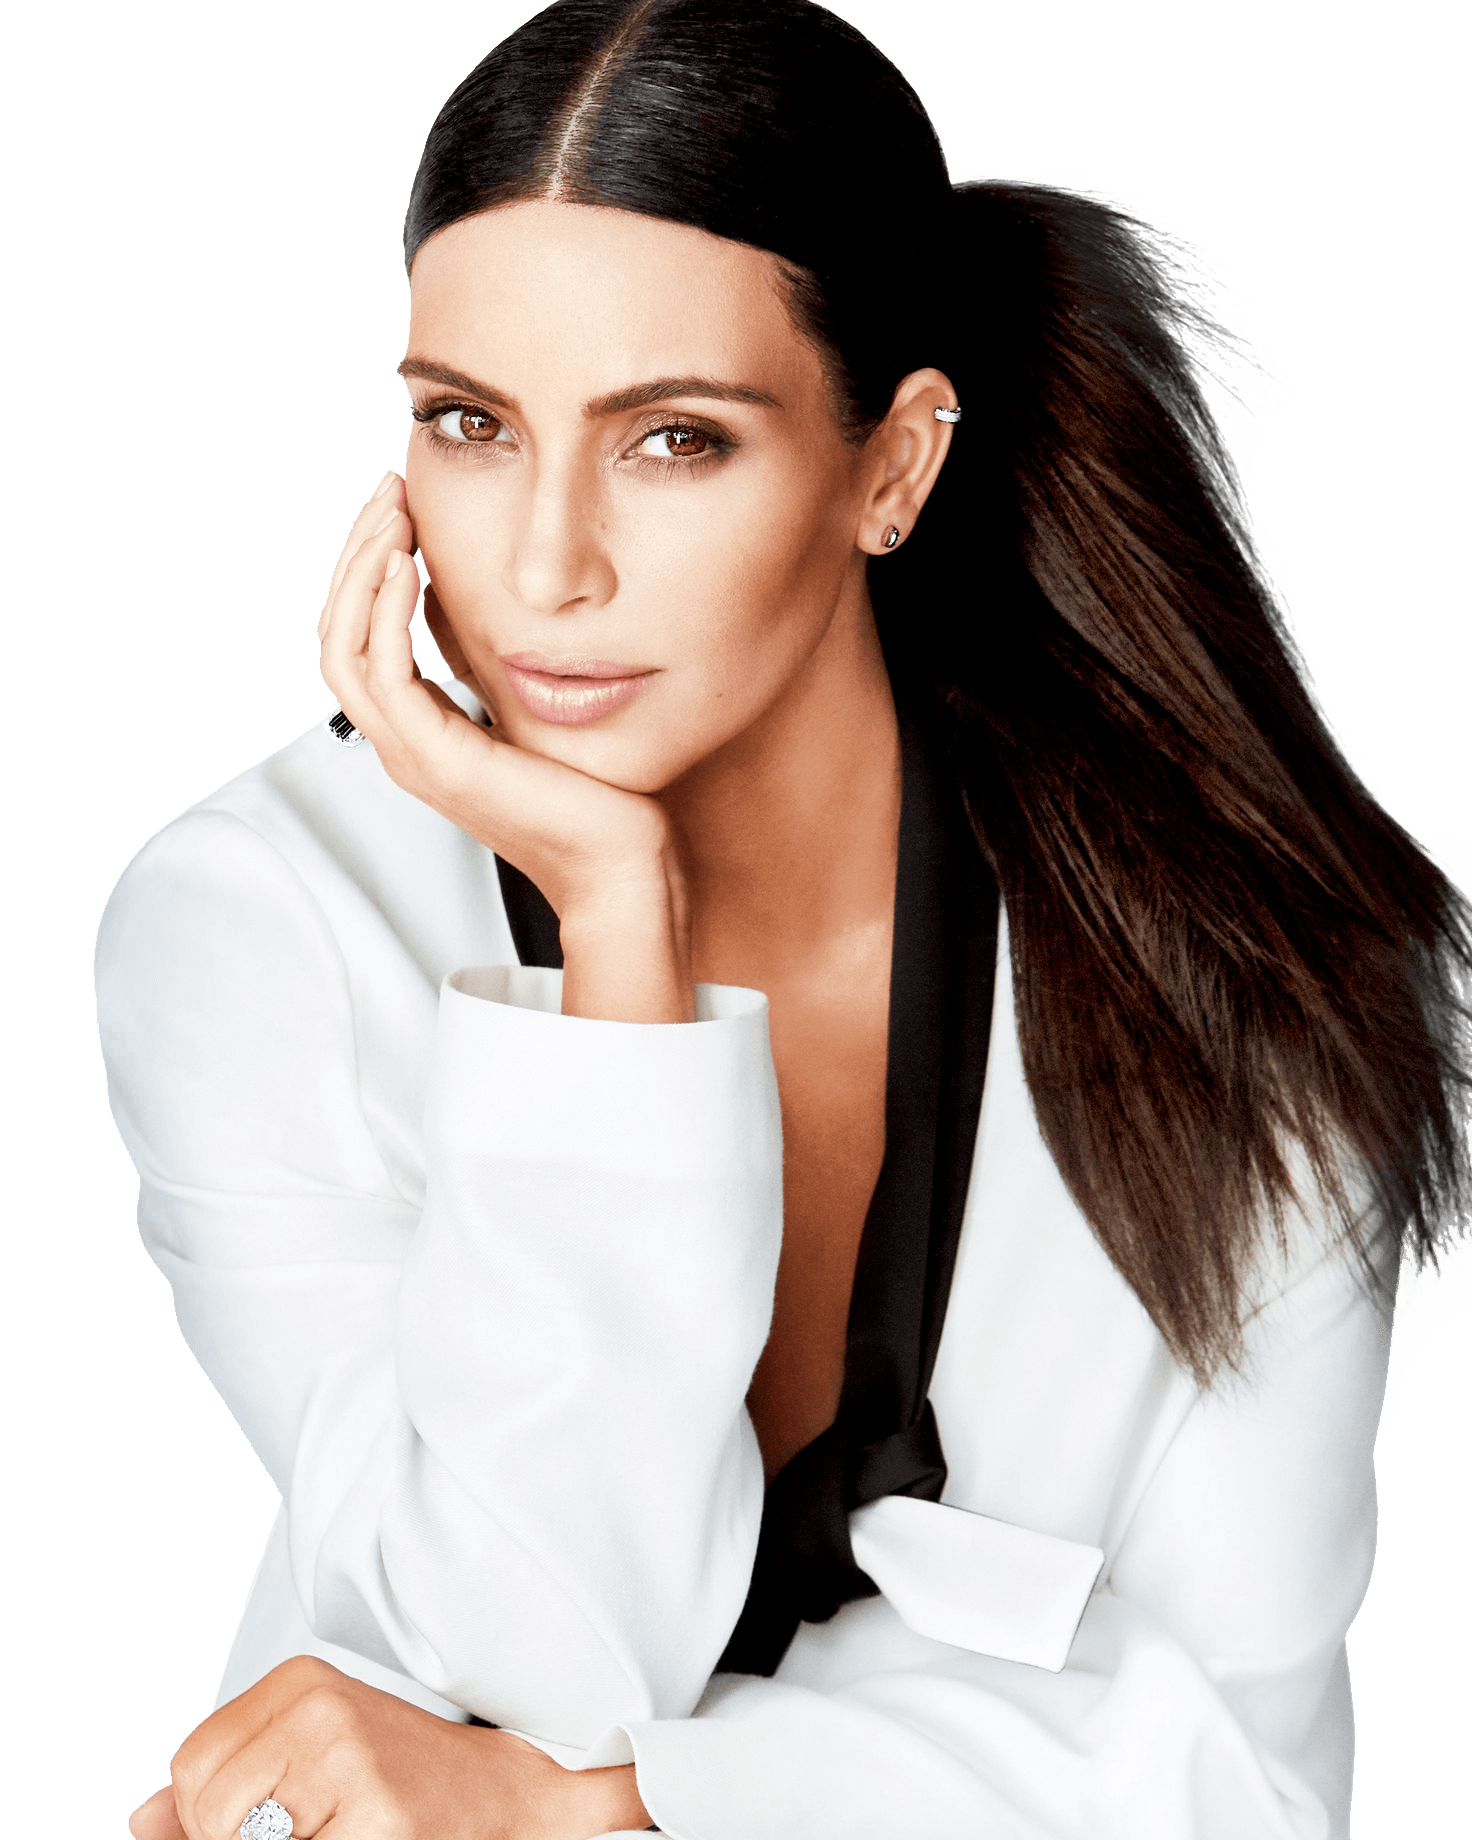 Kim kardashian break the internet png. Looking at you transparent